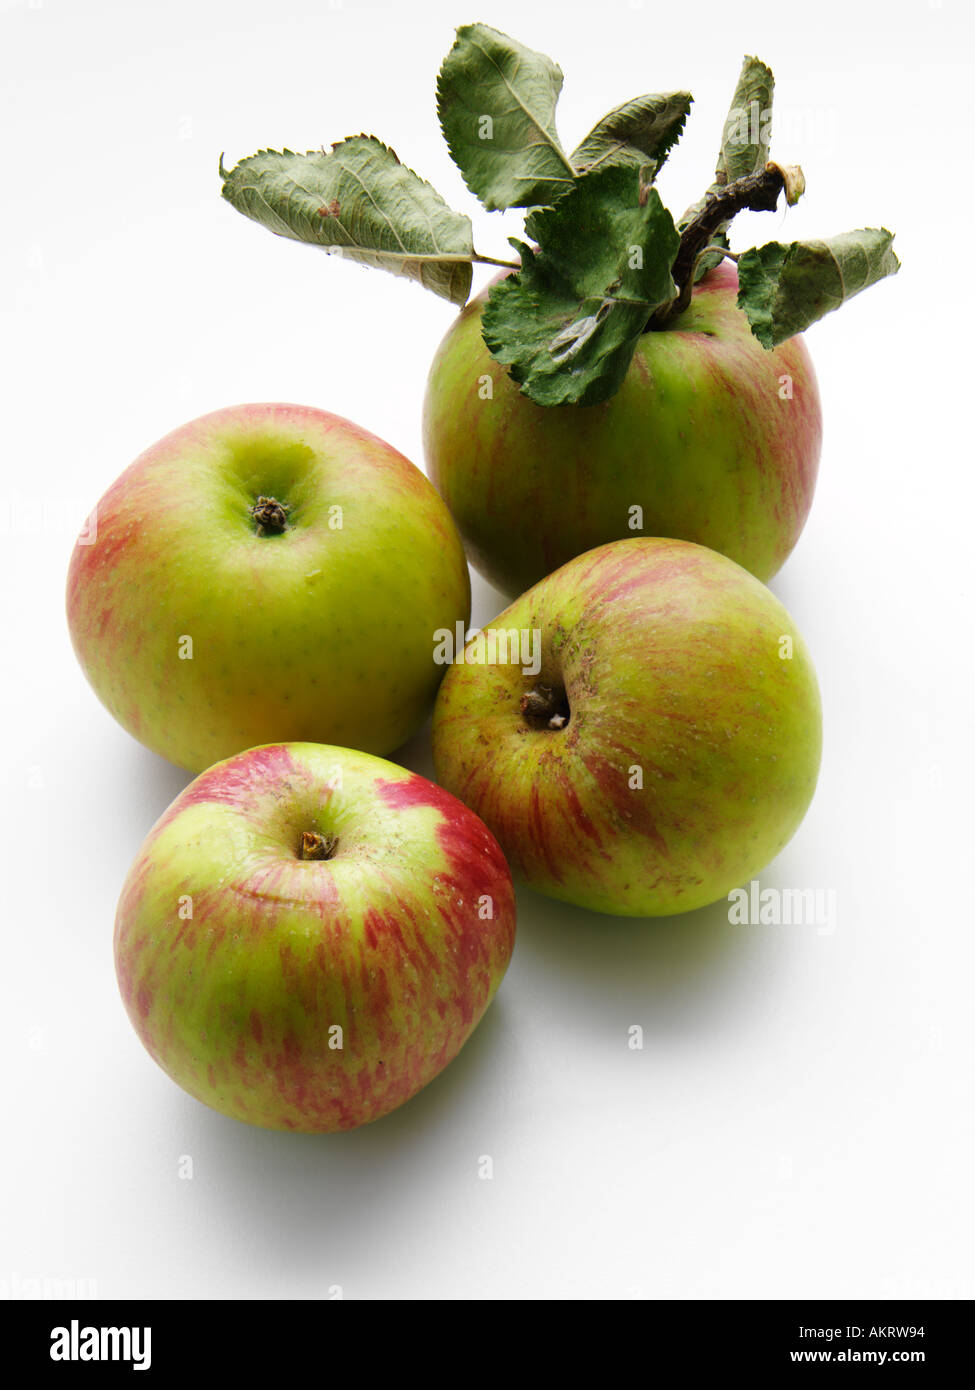 Bramley Apples on a white background - Stock Image